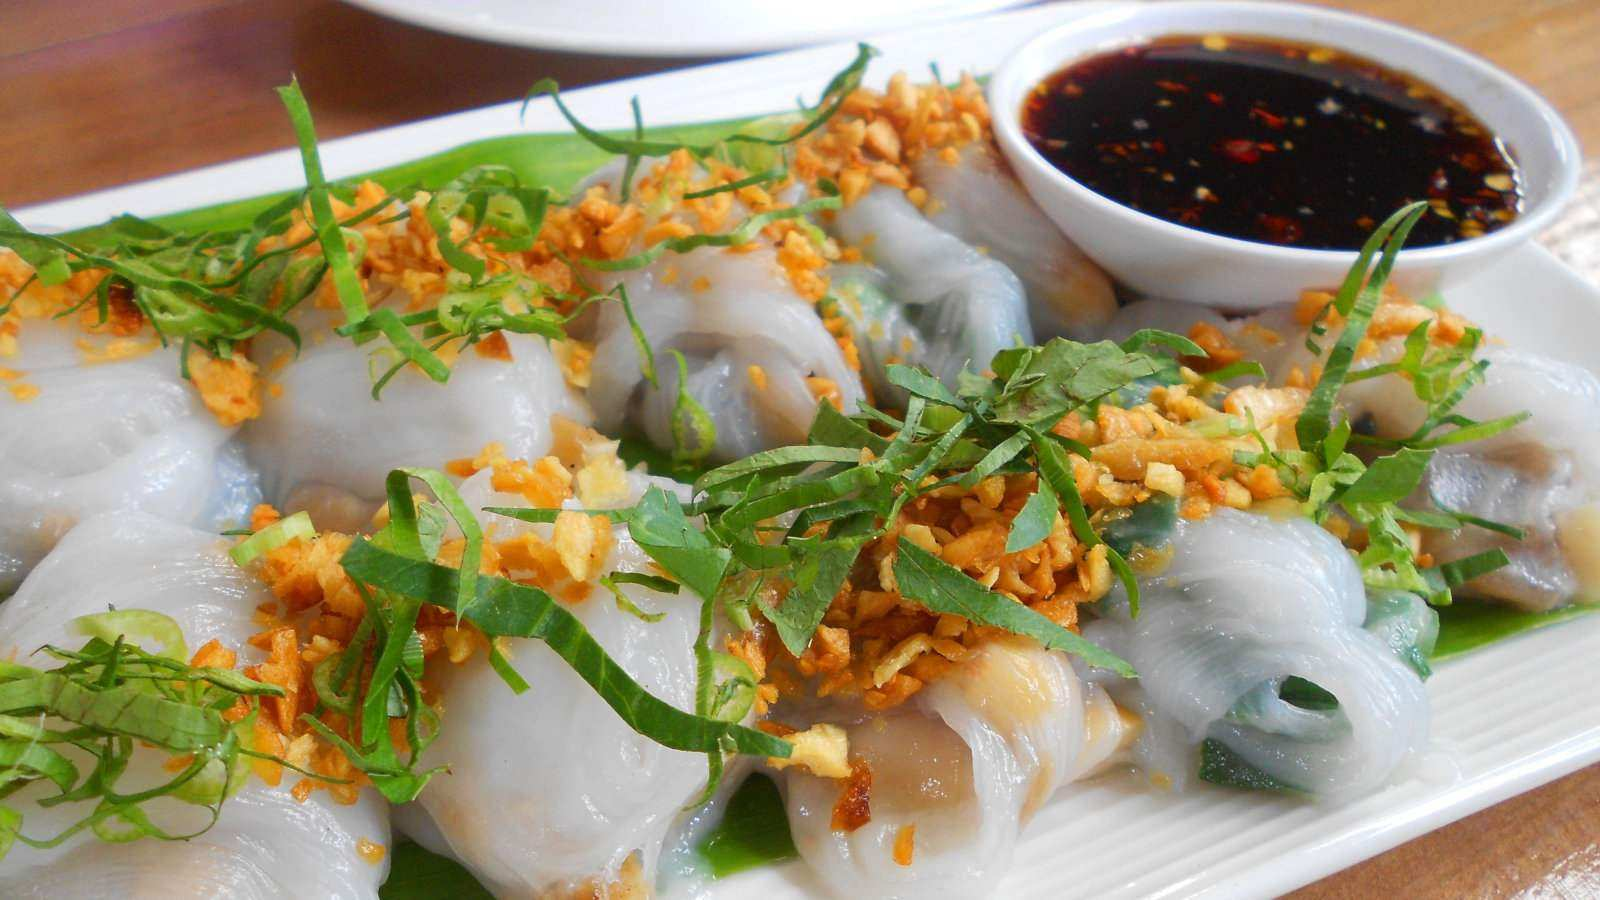 Banh cuon are a type of Vietnamese roll with yummy mushroom fillings